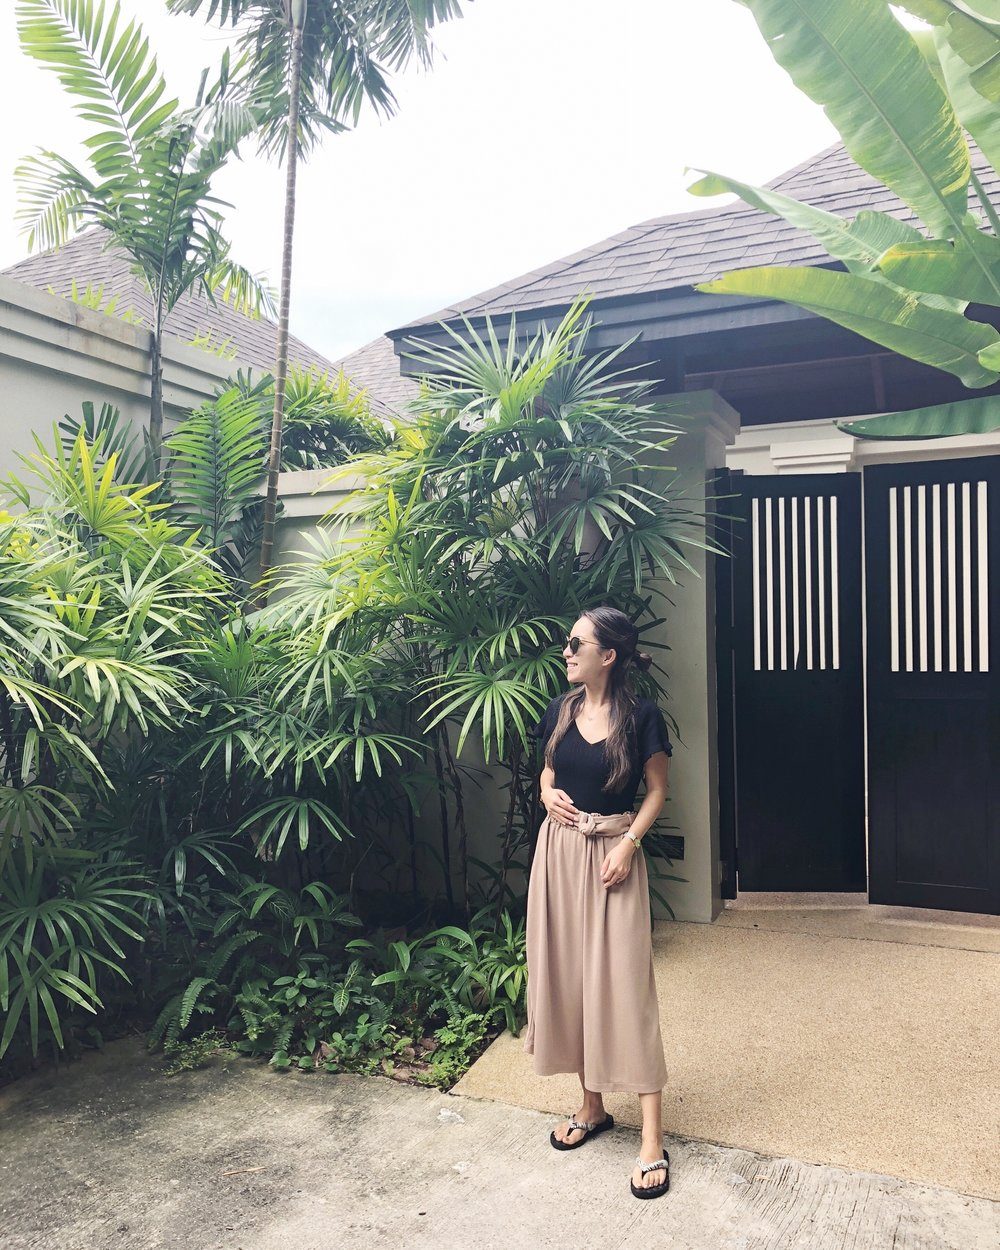 Location: Phuket | Wearing: Uniqlo trousers, Reef sandals, blouse from local brand